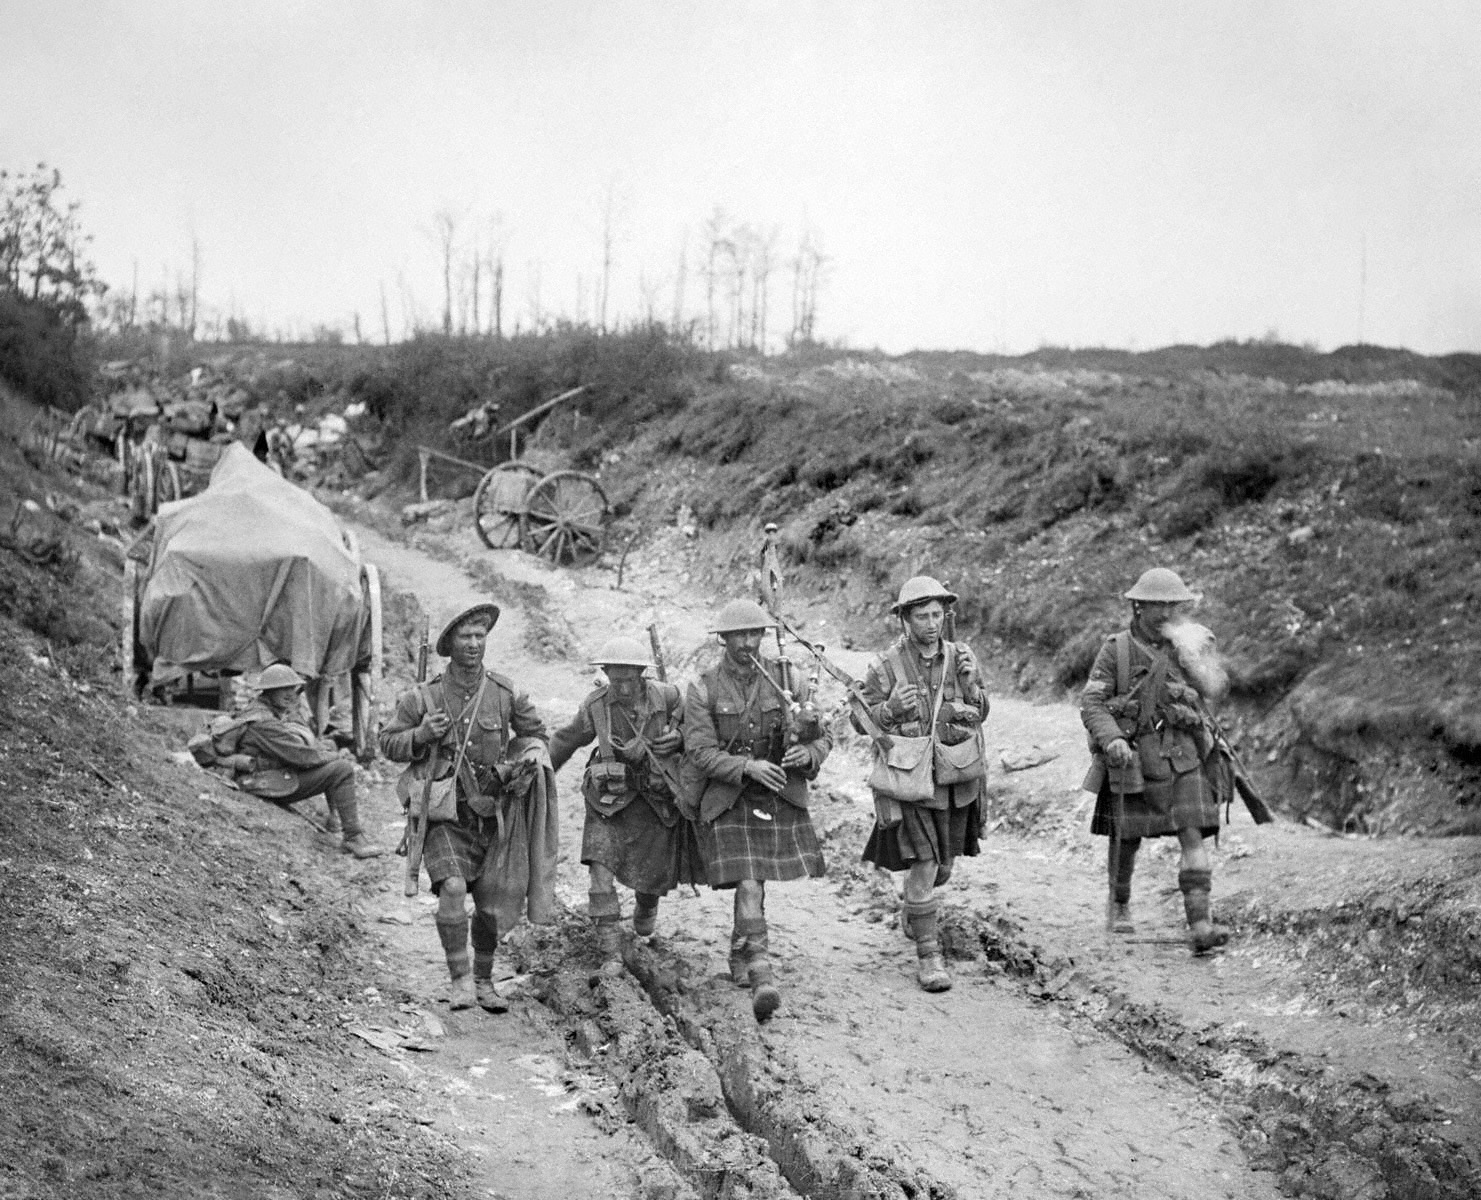 """a history of the attack of vimy ridge in world war i The attack on vimy ridge took place on  posts about the history and centennial of the first world war  on """" vimy ridge and canadian nationalism ."""